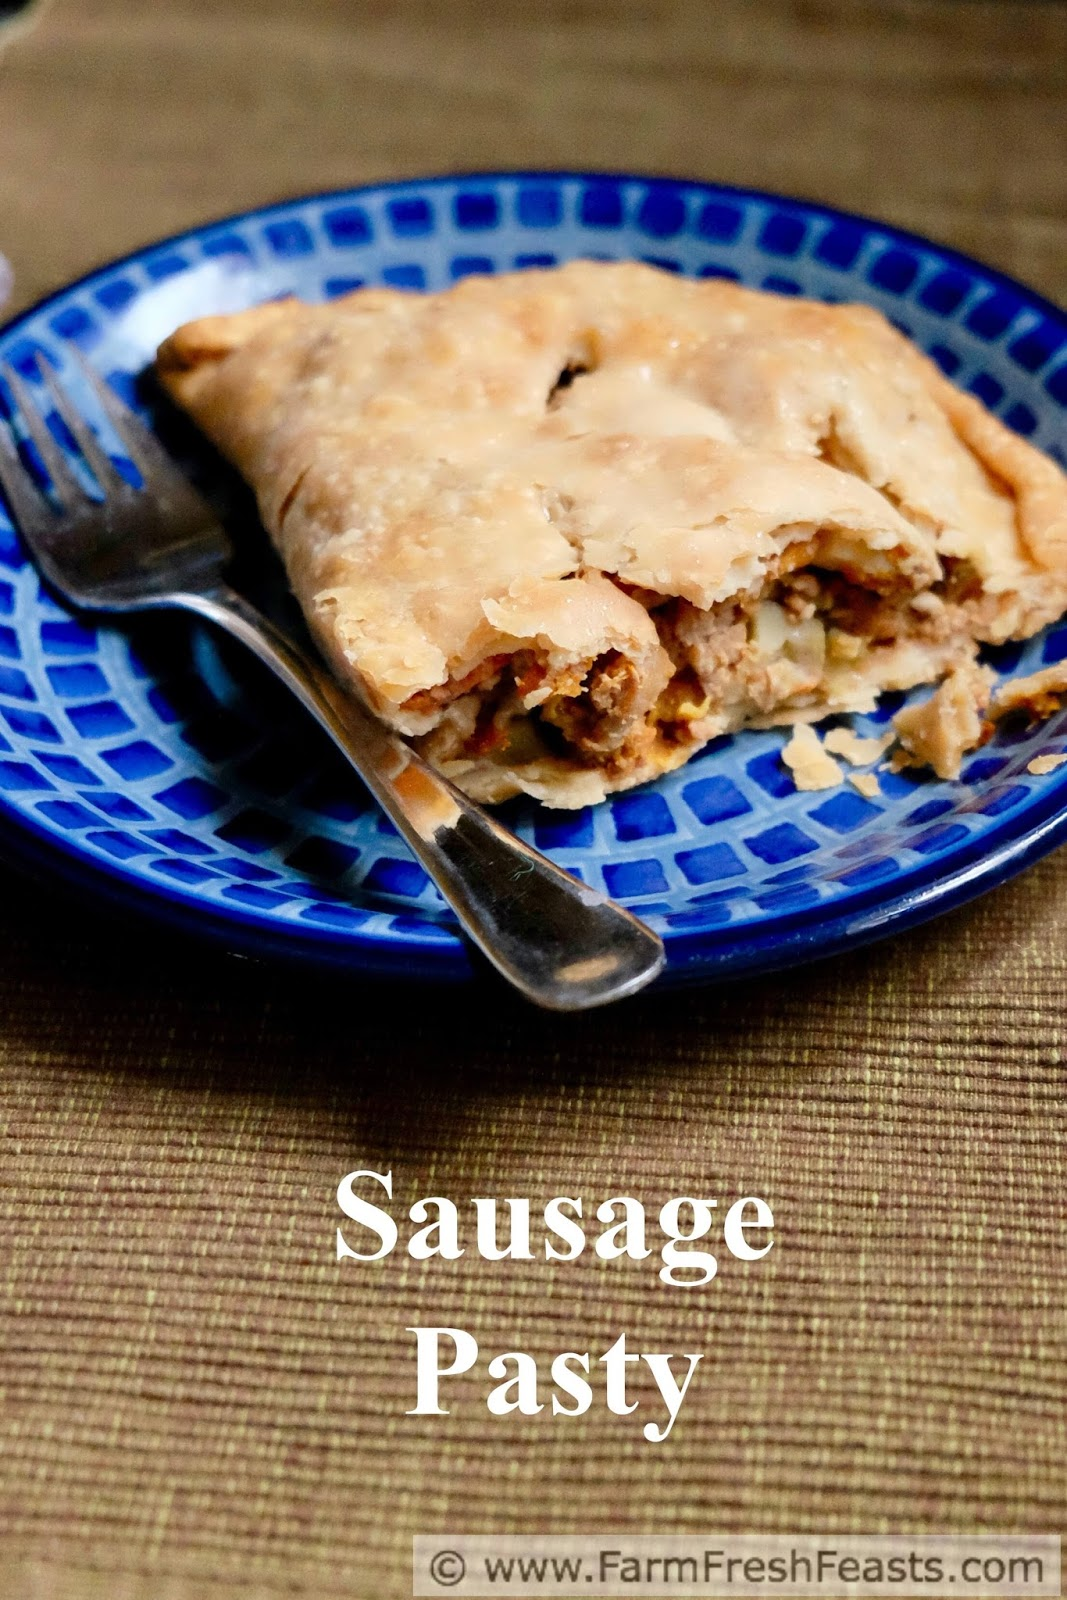 FARM FRESH FEASTS SAUSAGE PASTY MEAT PIE